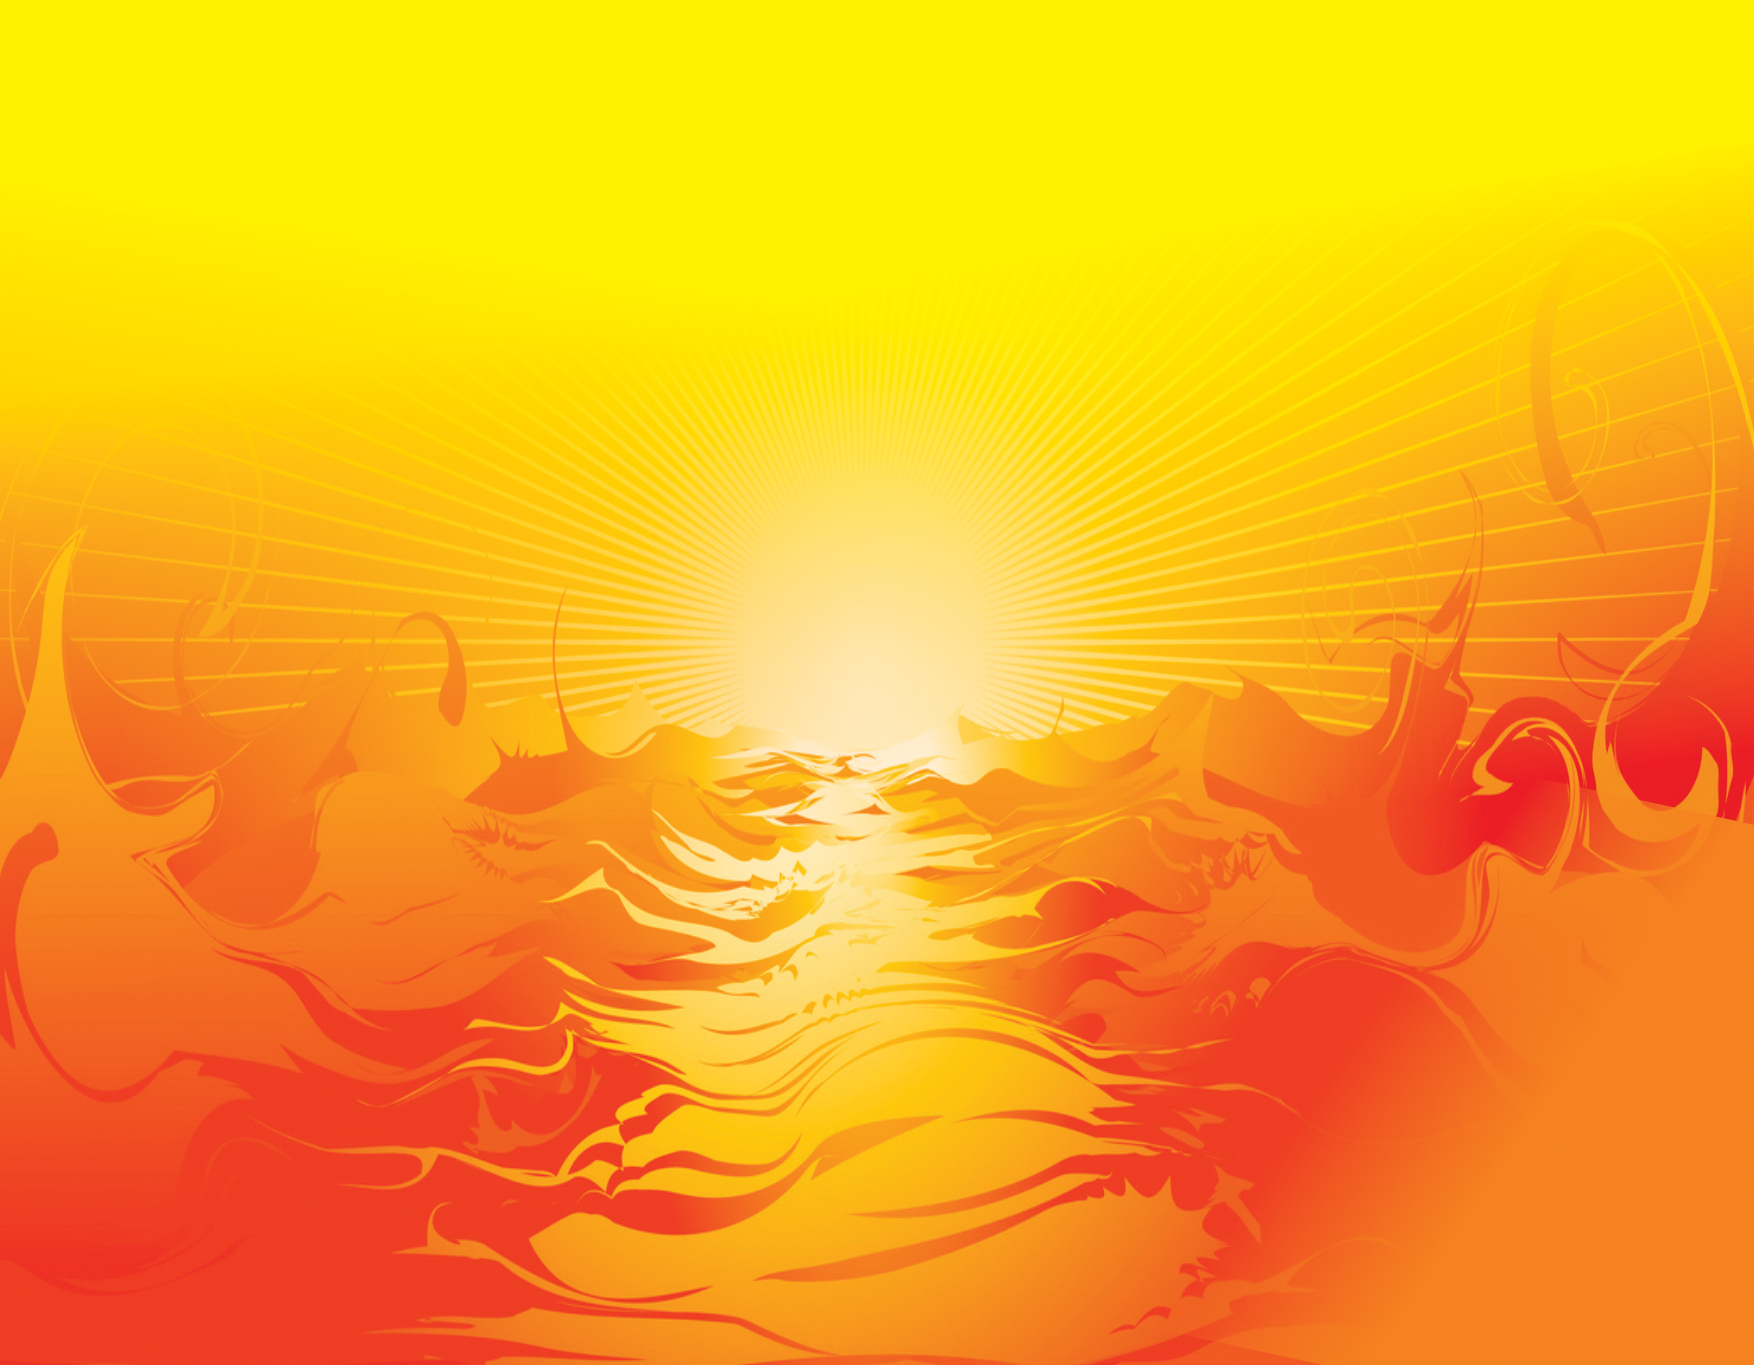 chhath puja background sun rise and clipart red and yellow